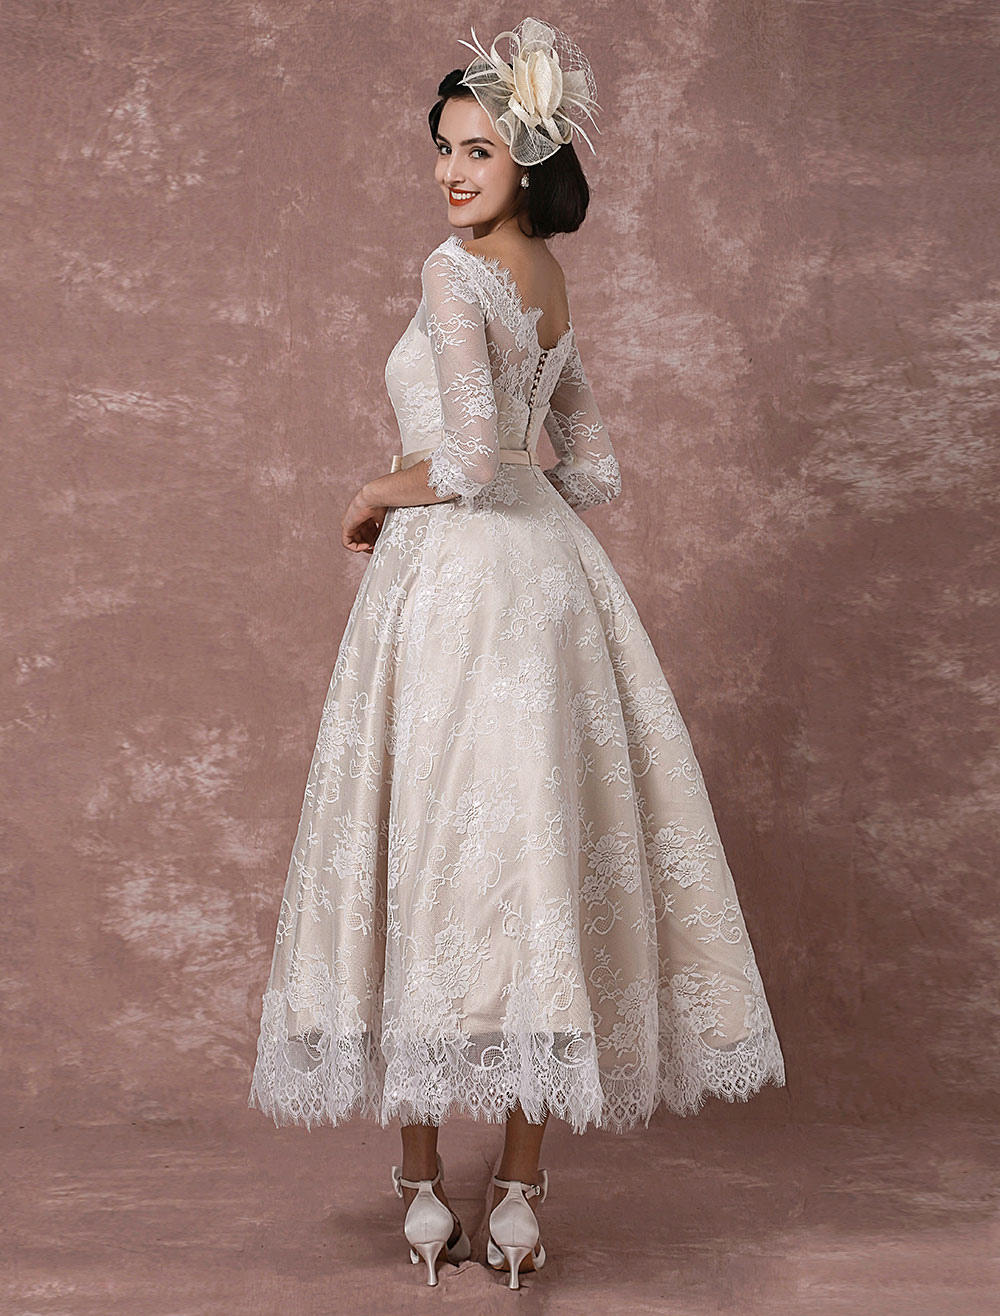 Lace Wedding Dress Vintage Bateau Champagne Half Sleeves Bridal Gown ...